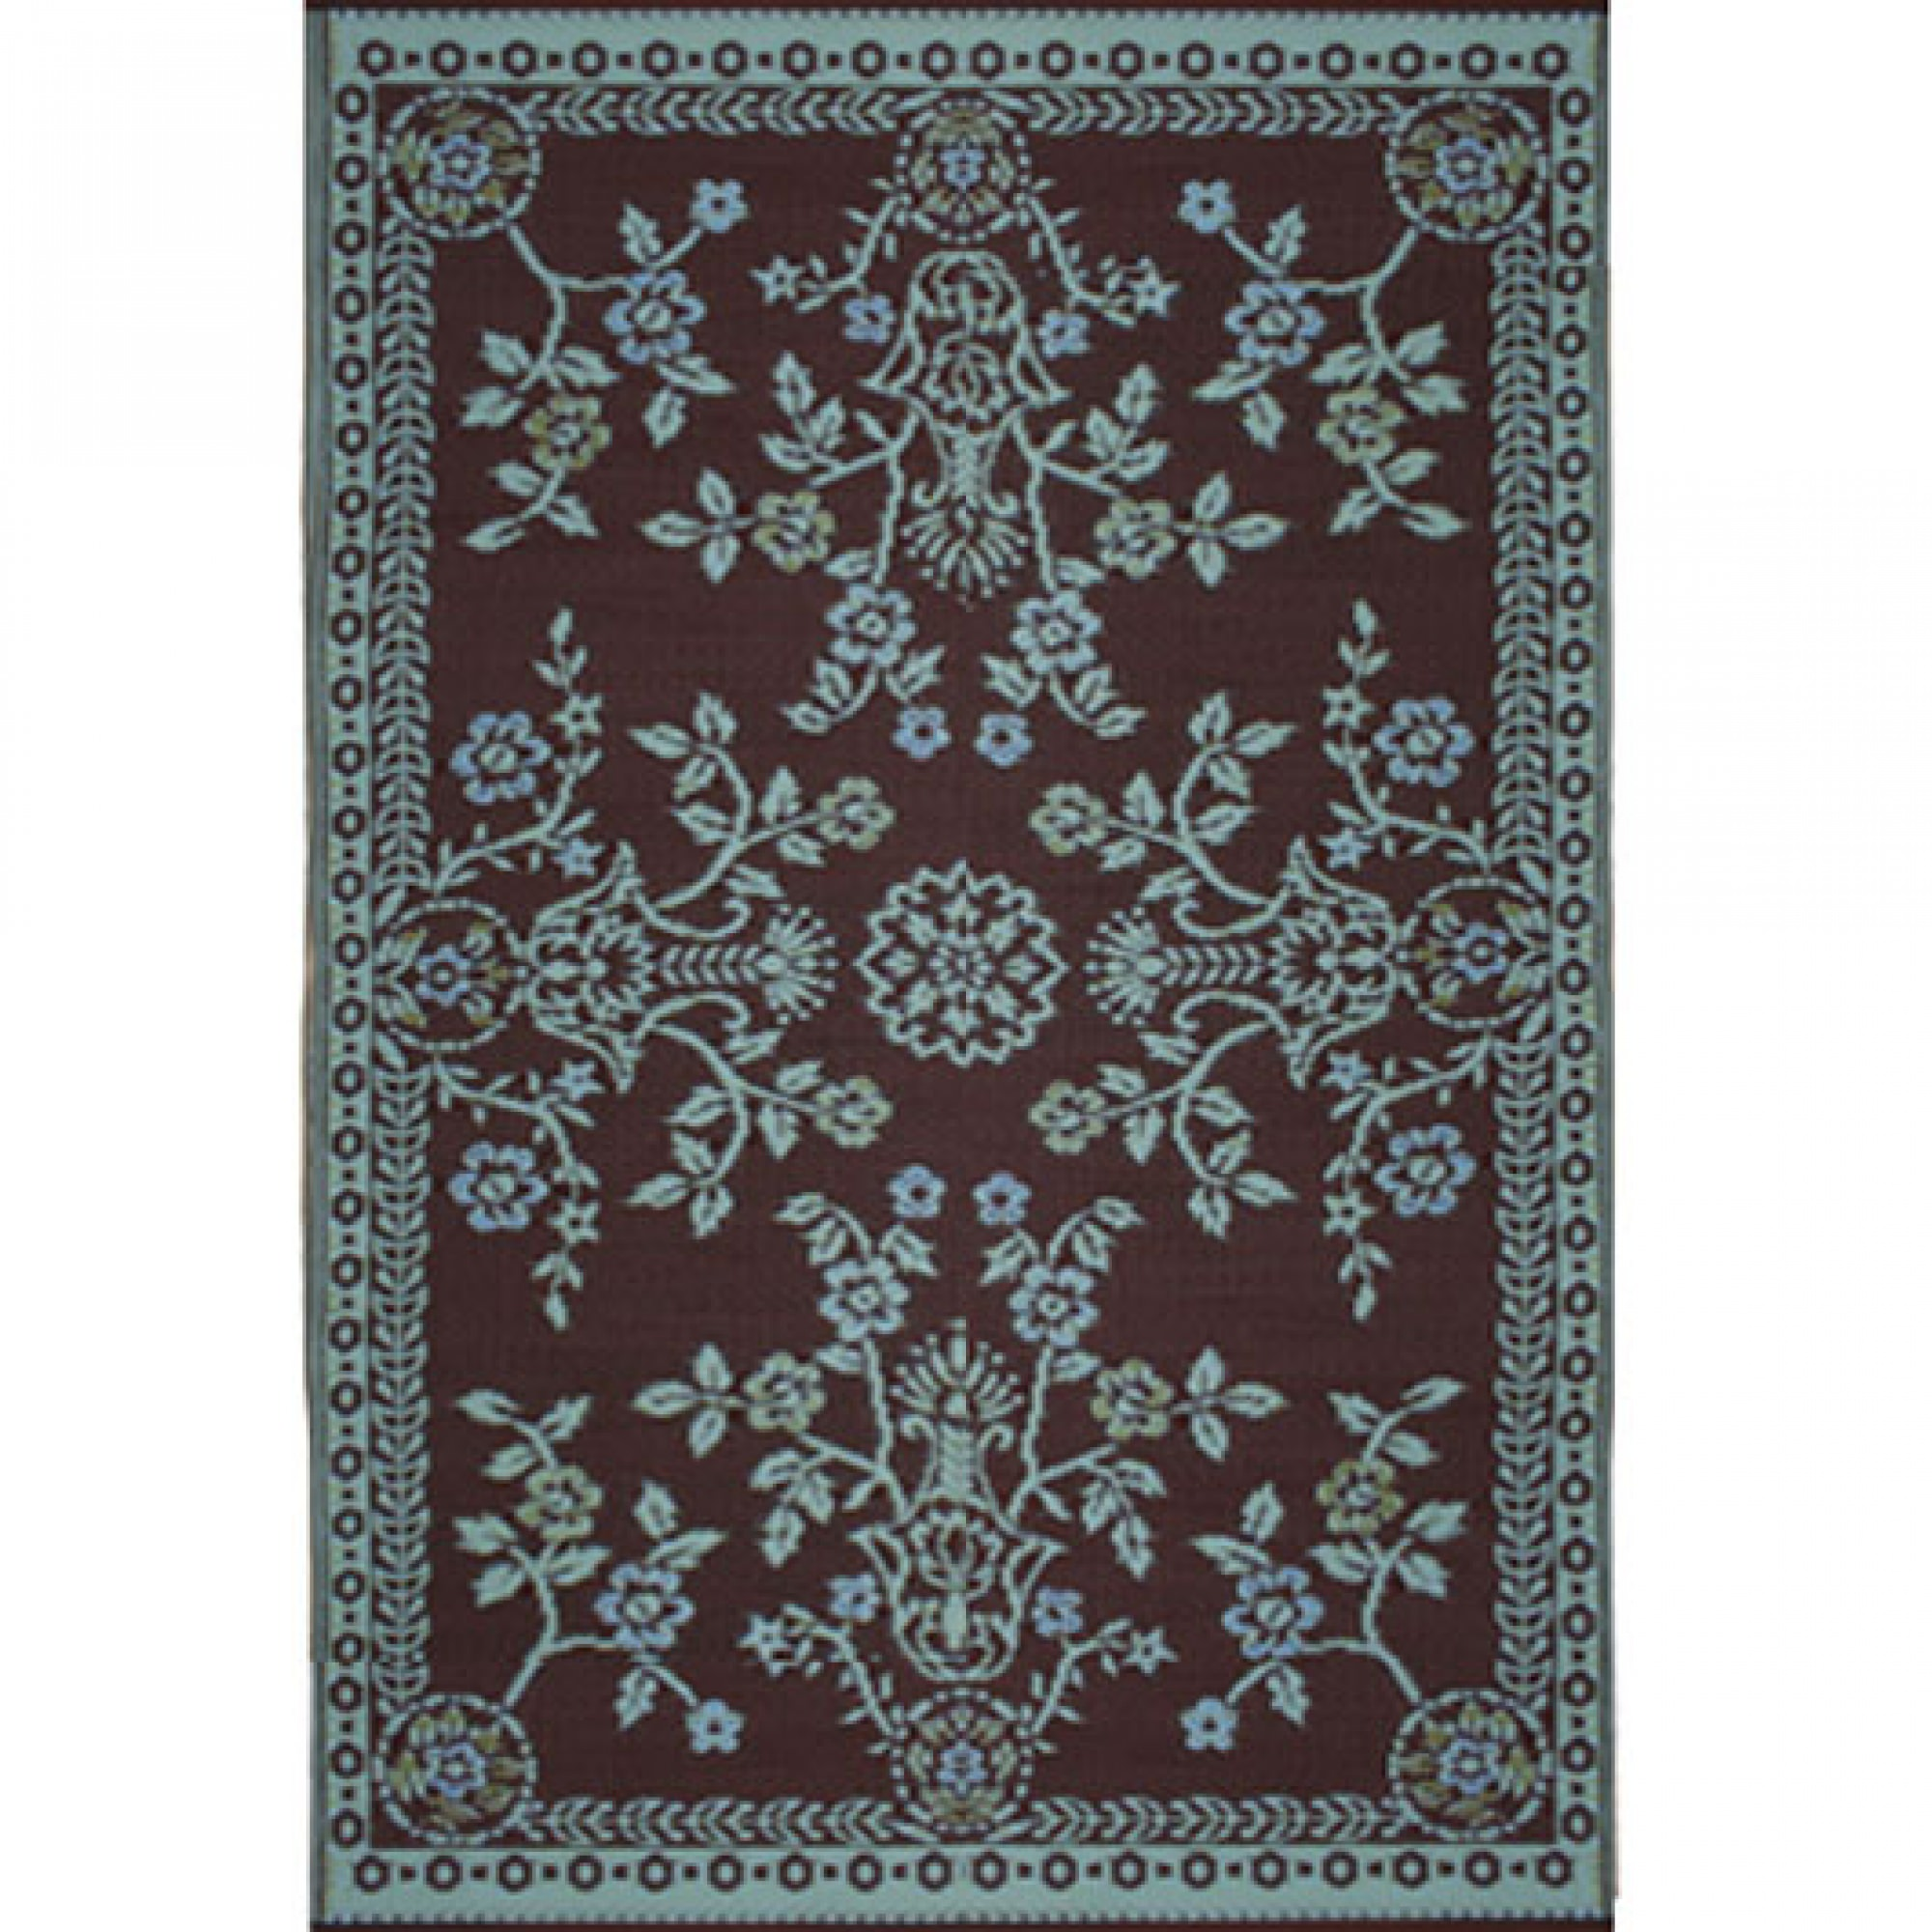 Mad Mats Oriental Garland Teal Brown 6x9 Sku Fm